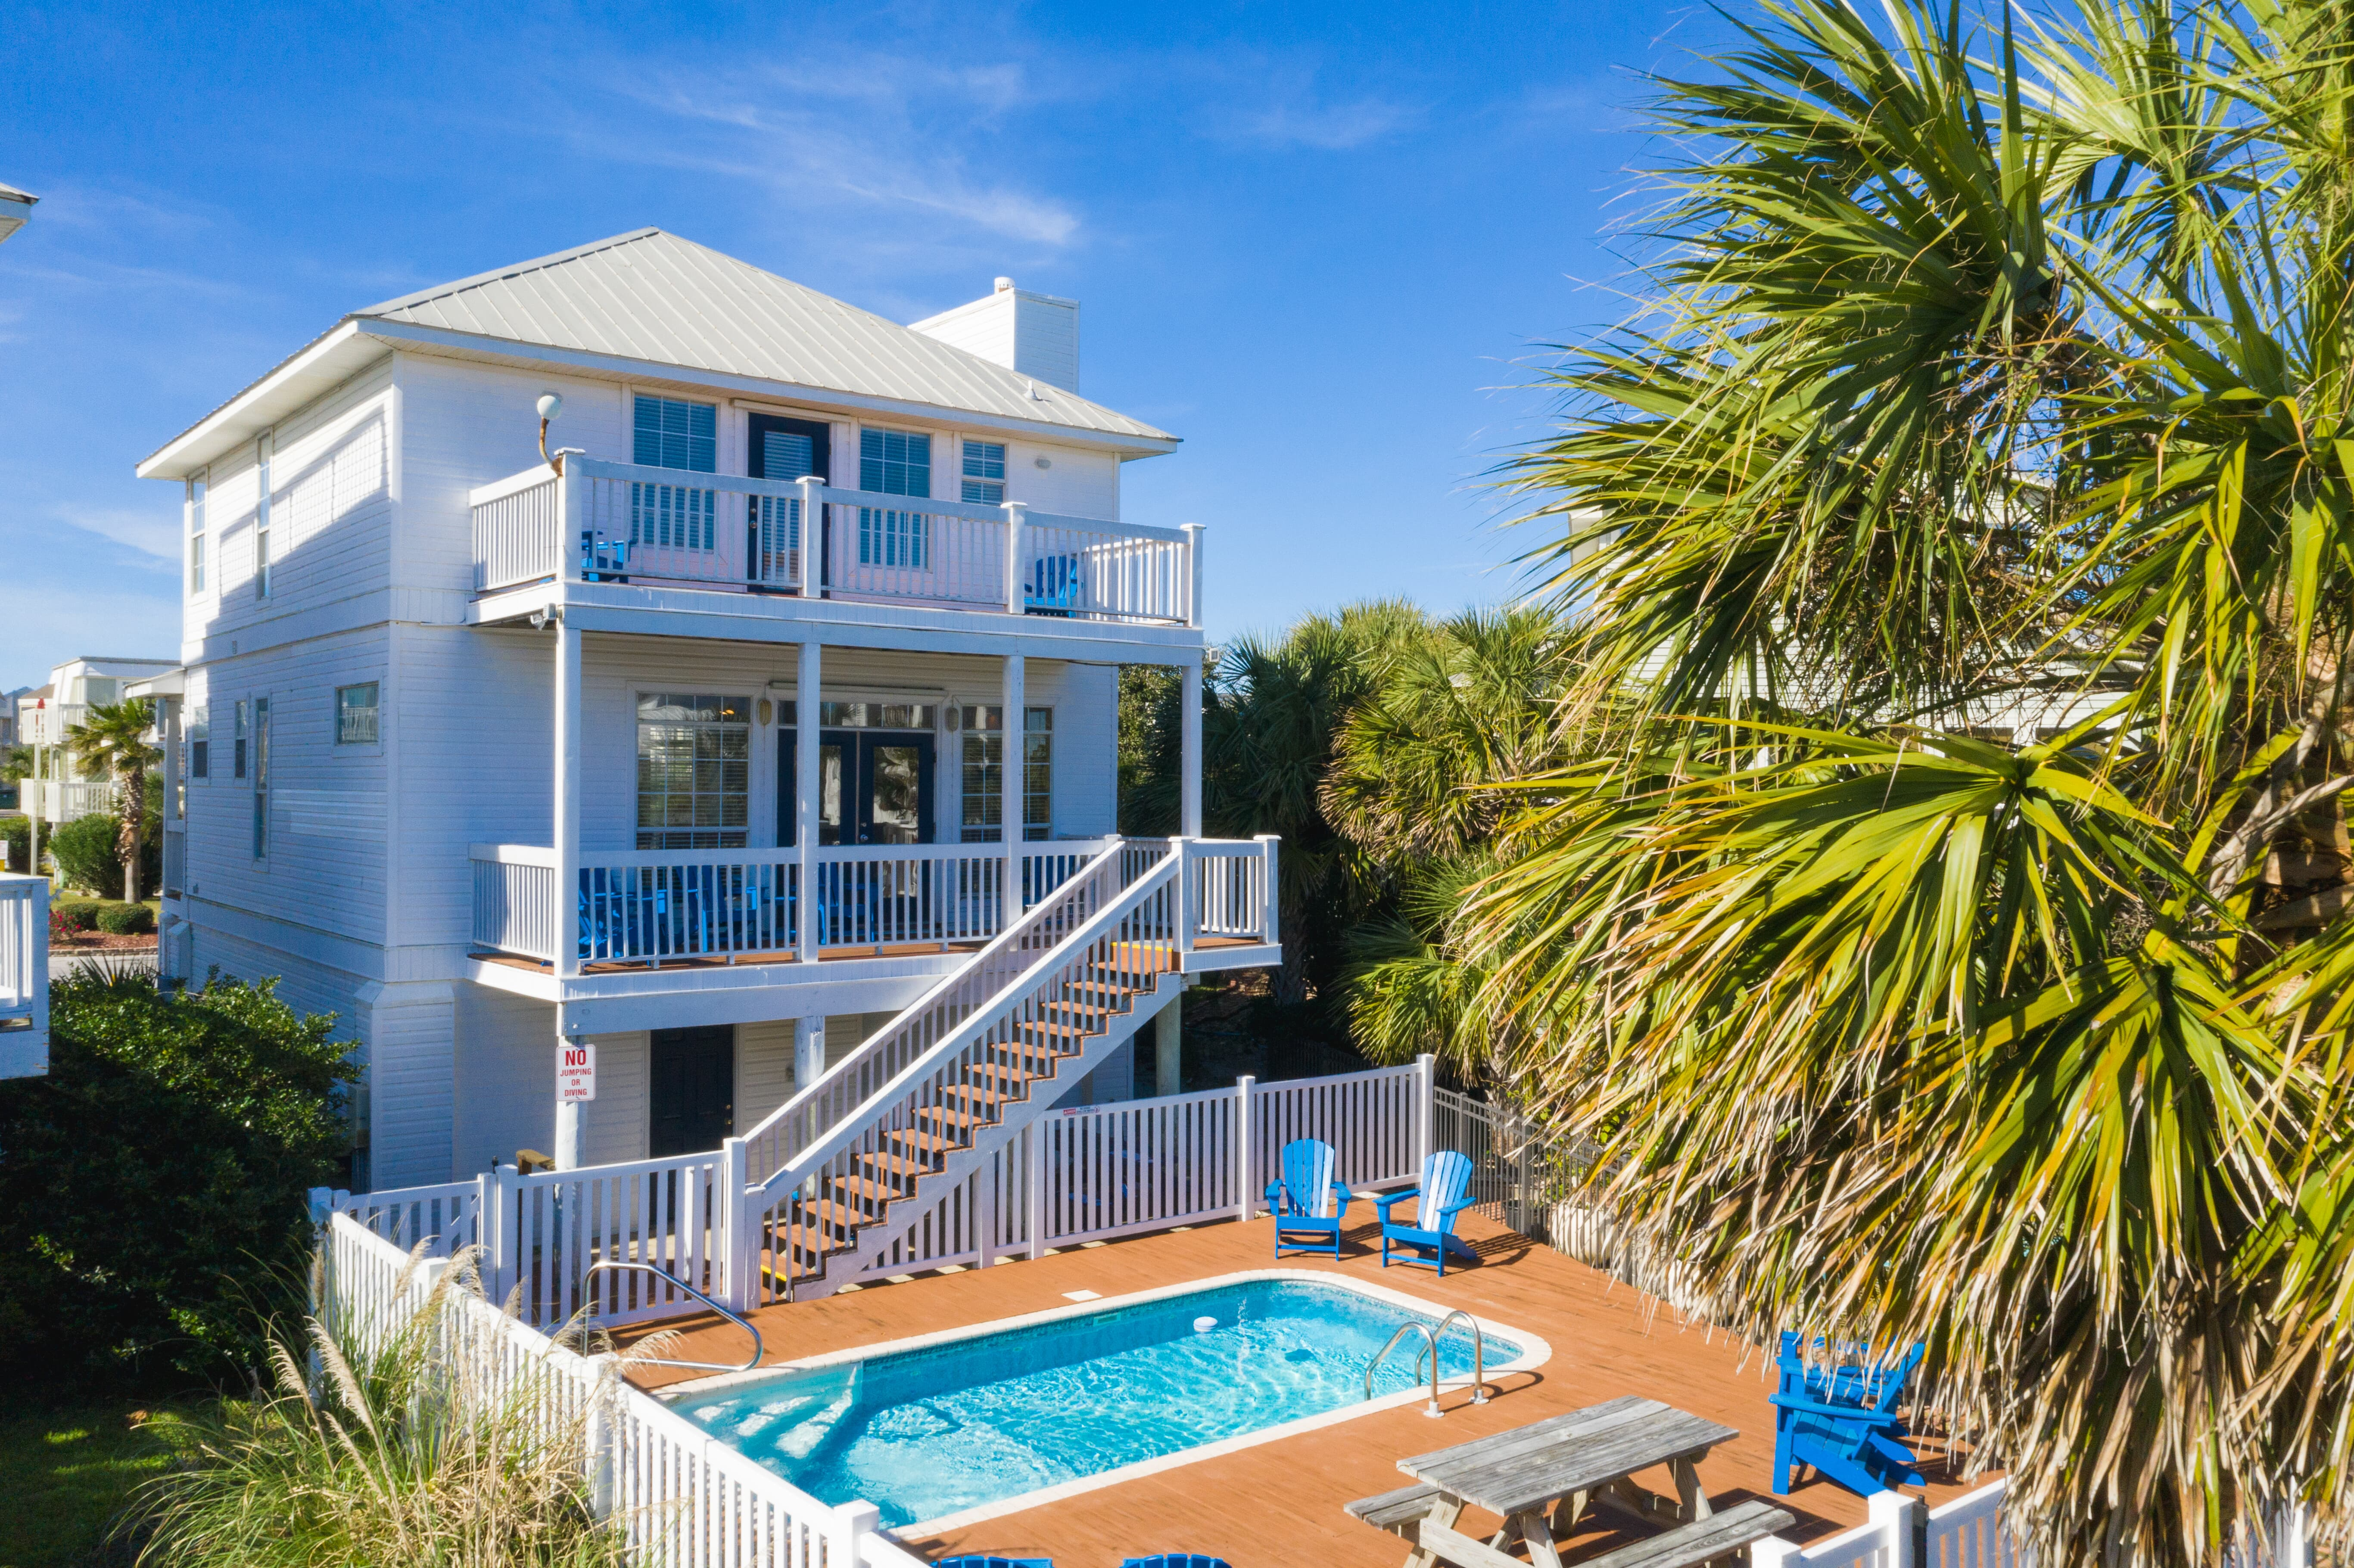 Le Starboard 258 House / Cottage rental in Pensacola Beach House Rentals in Pensacola Beach Florida - #3